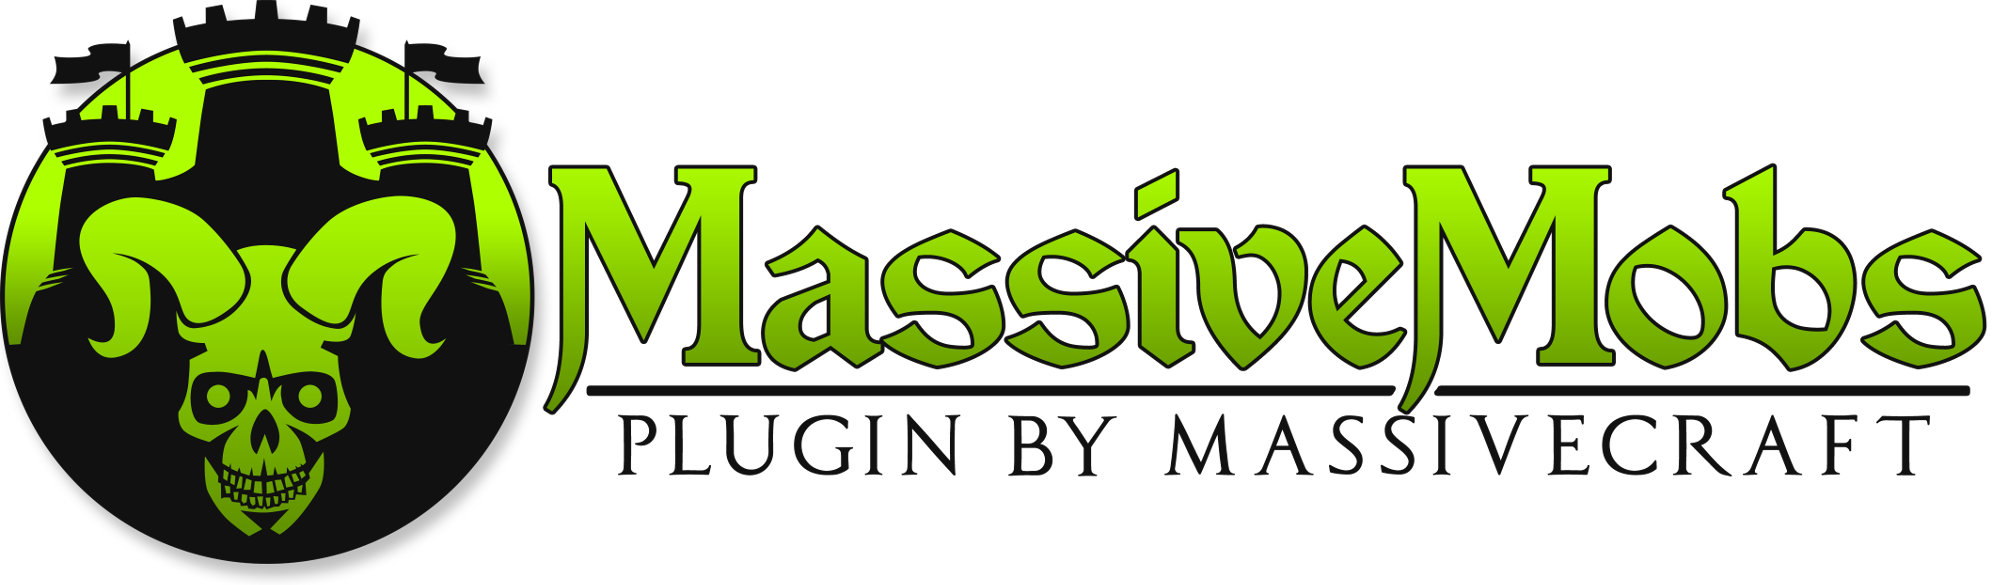 massivecraft-logotype-plugin-massivemobs-2000